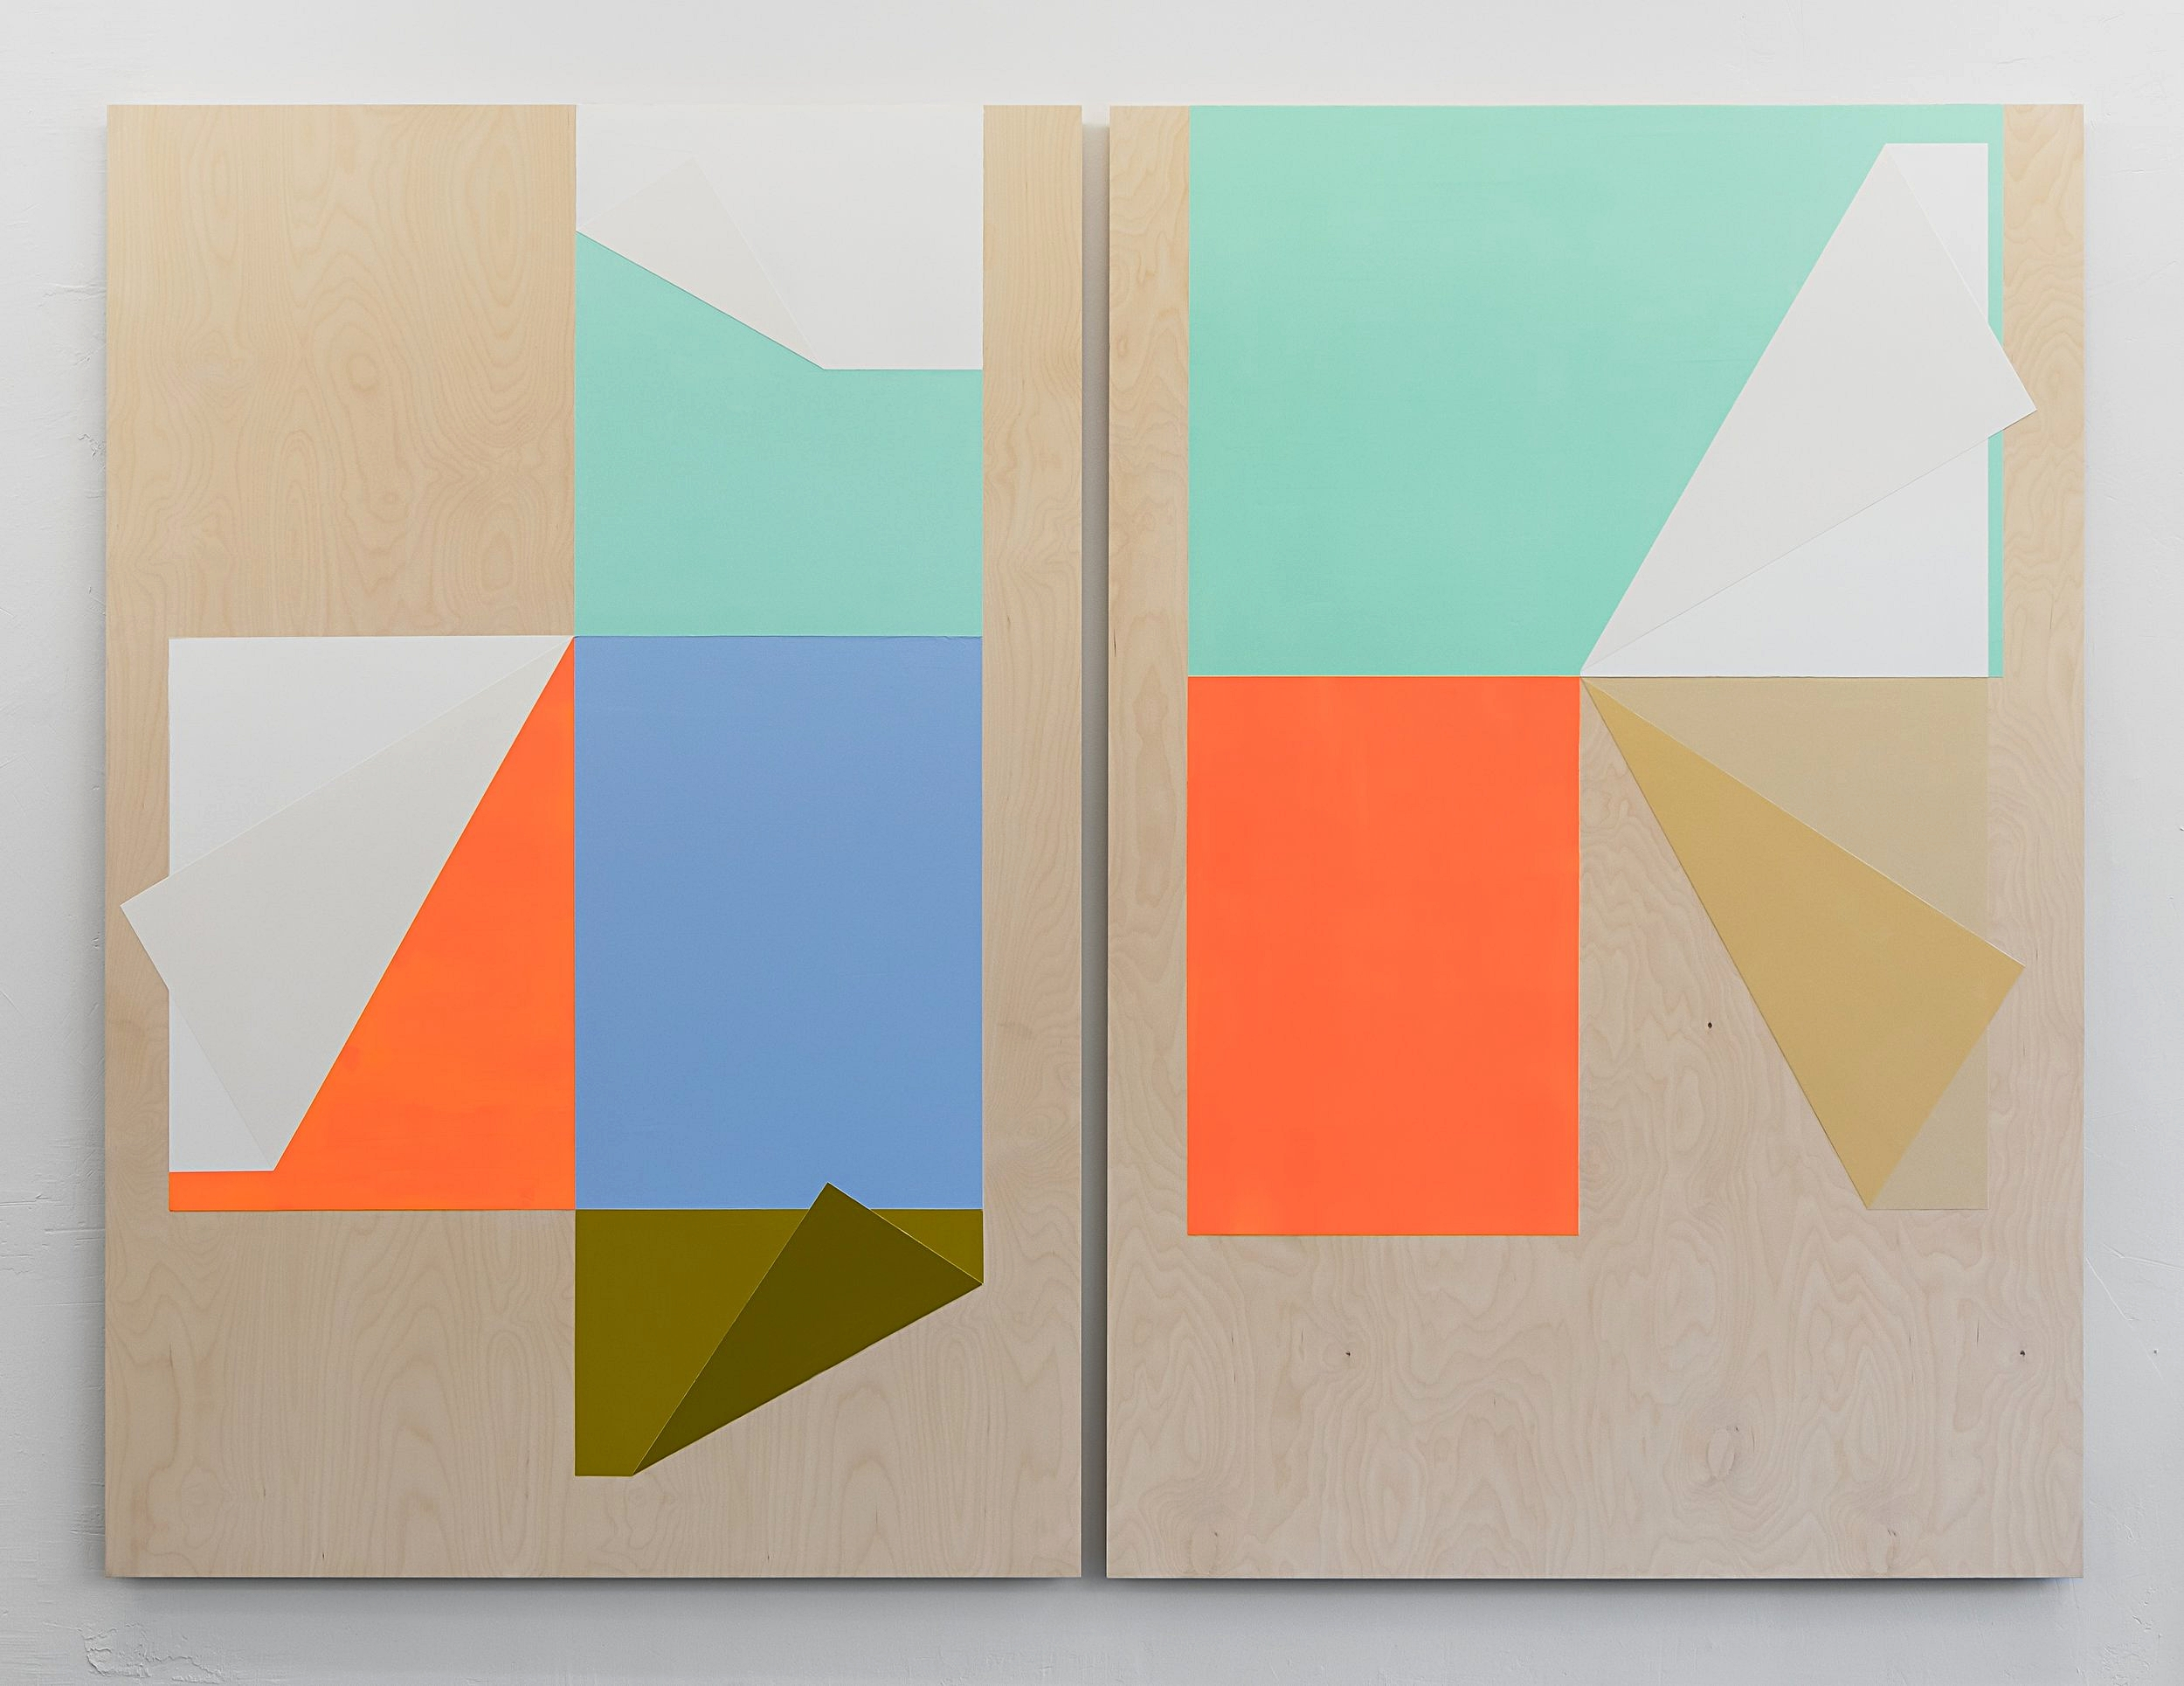 Untitled (Diptych), 2016. Acrylic and gesso on birch plywood. 2 panels 180 x 120 cm. Overall 180 x 244 cm